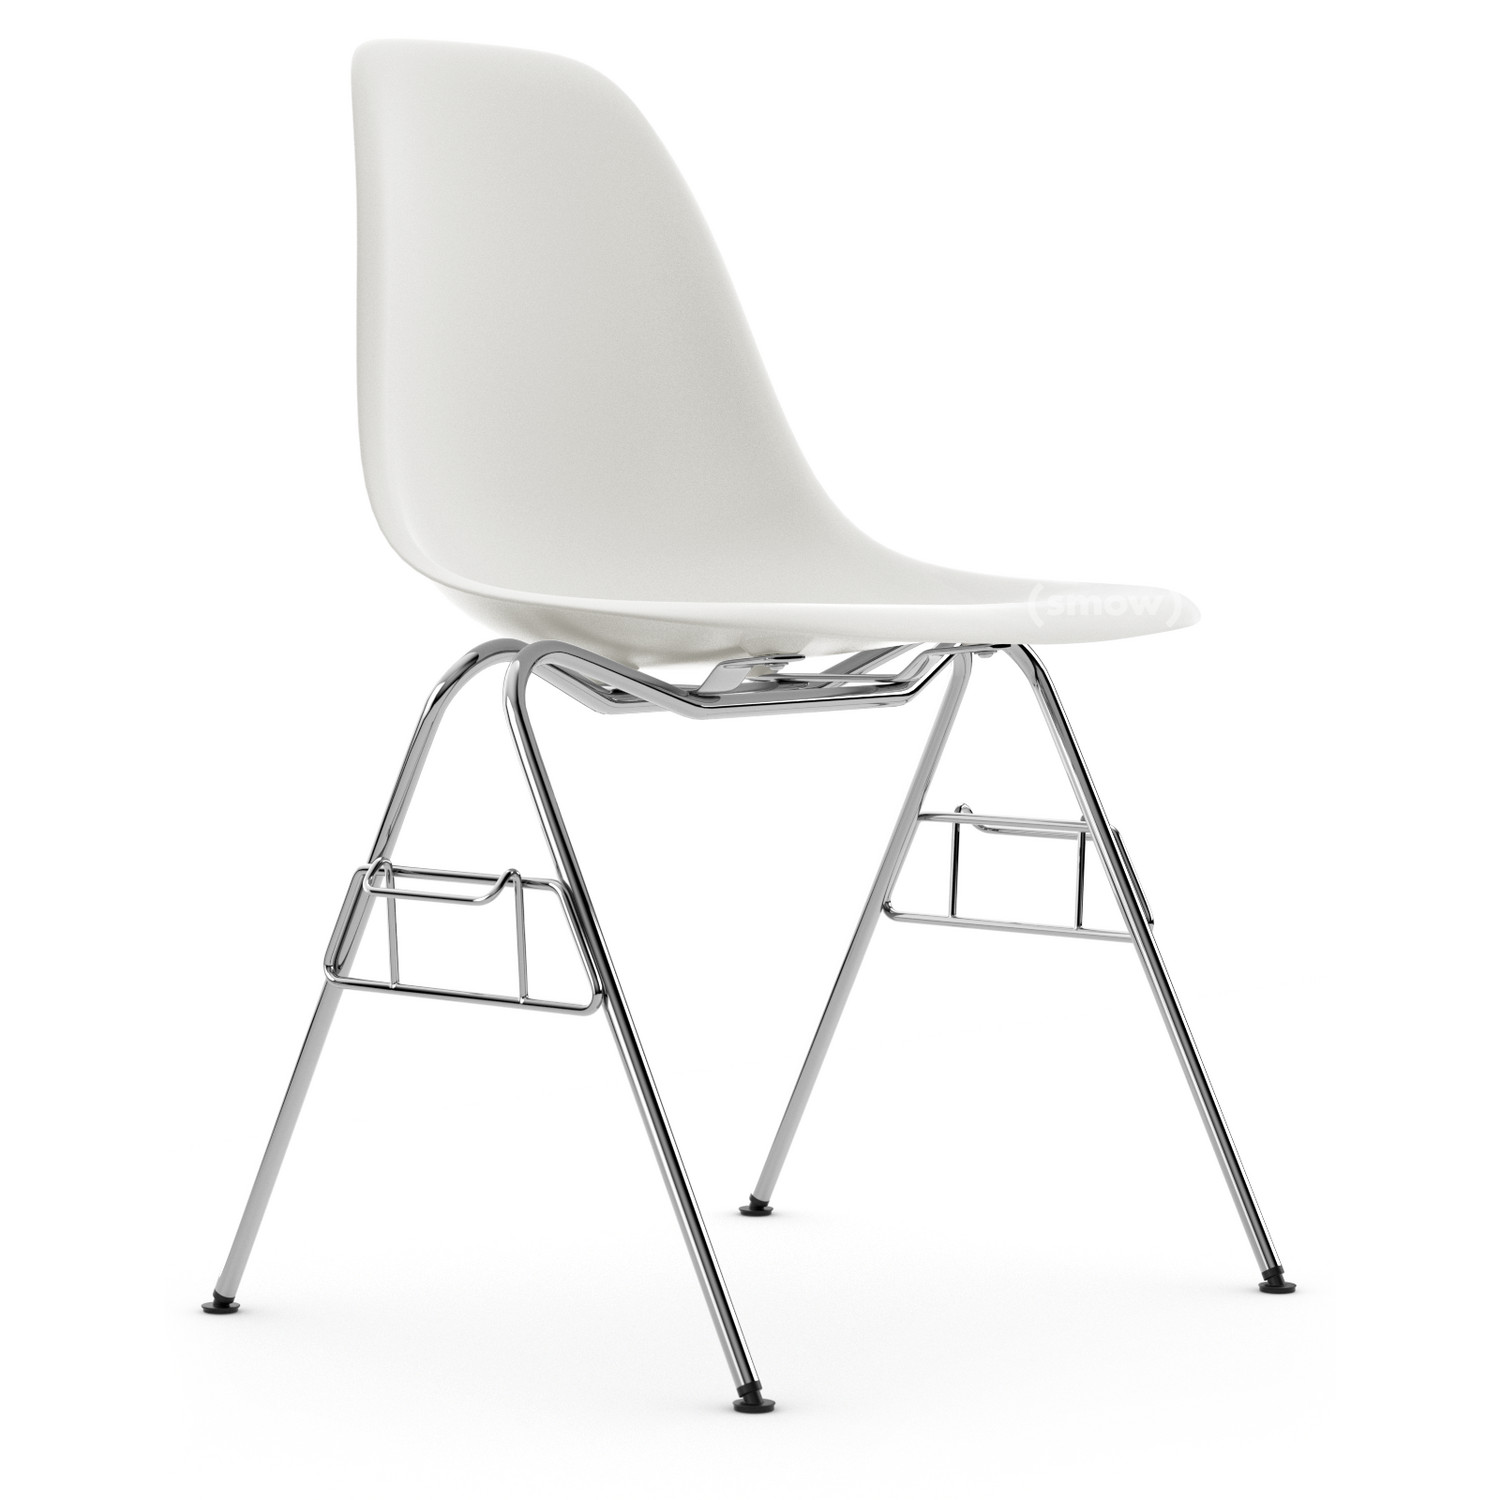 vitra eames plastic side chair dss white without. Black Bedroom Furniture Sets. Home Design Ideas